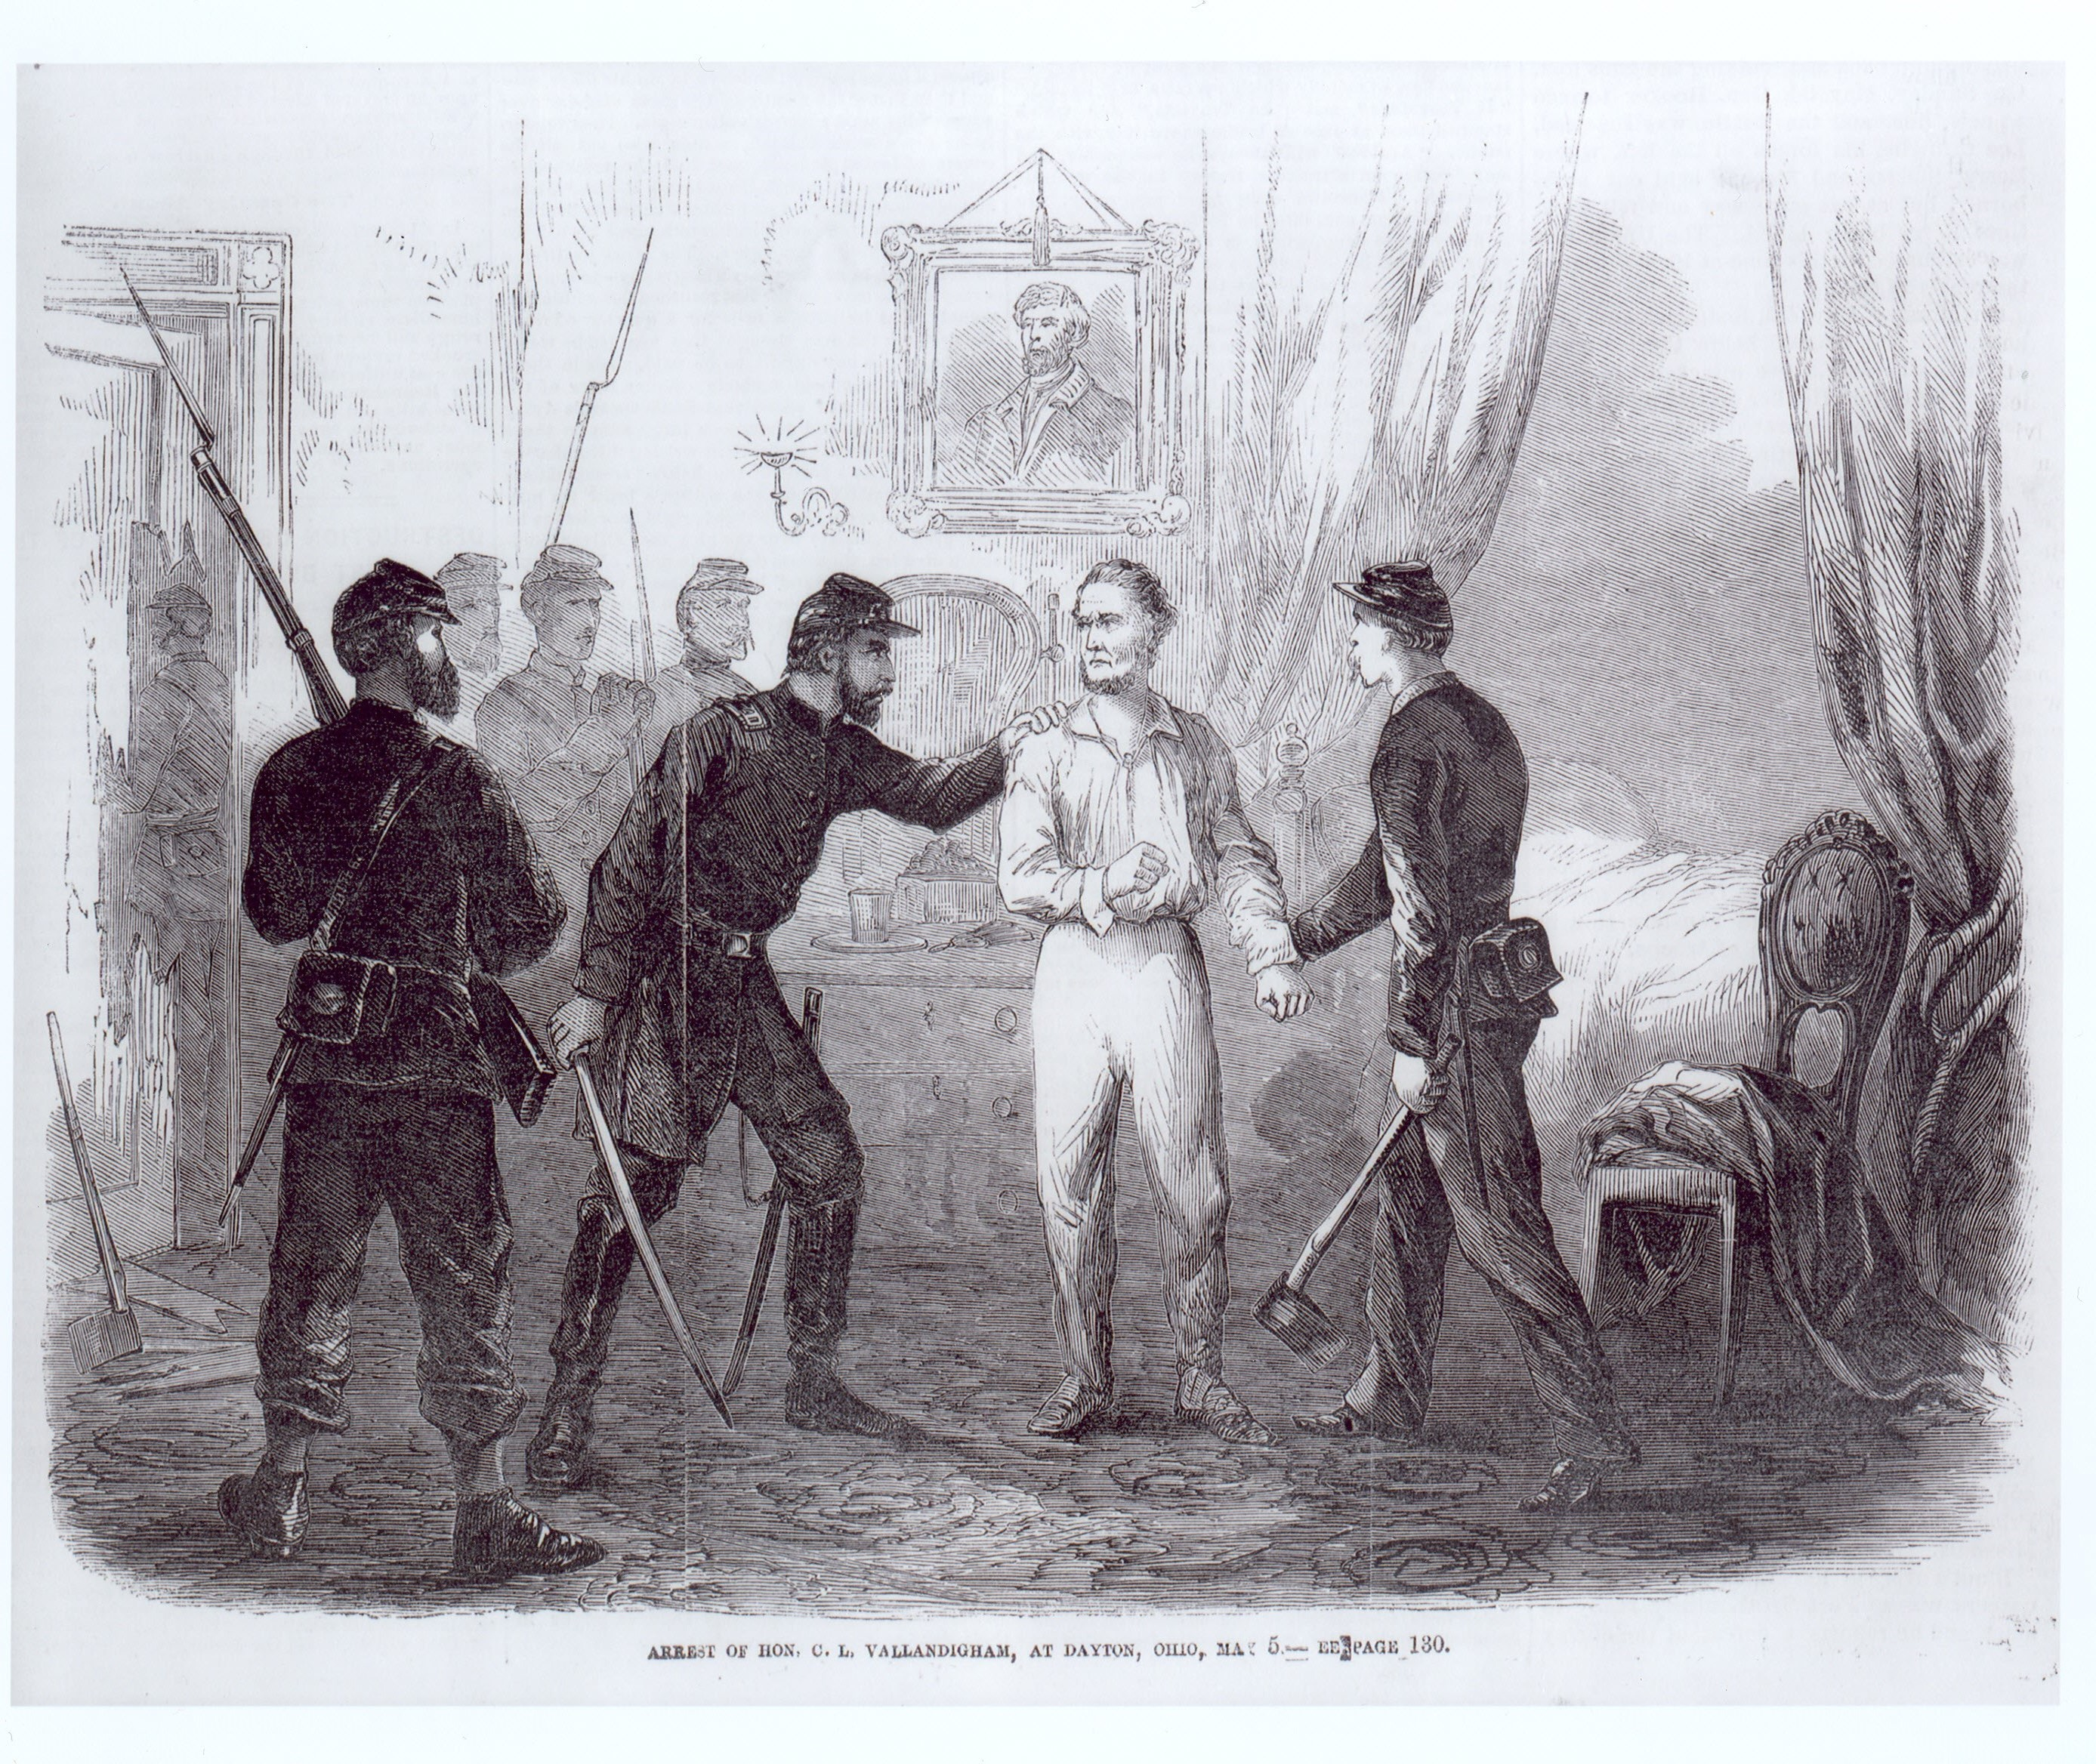 Vallandigham's arrest.